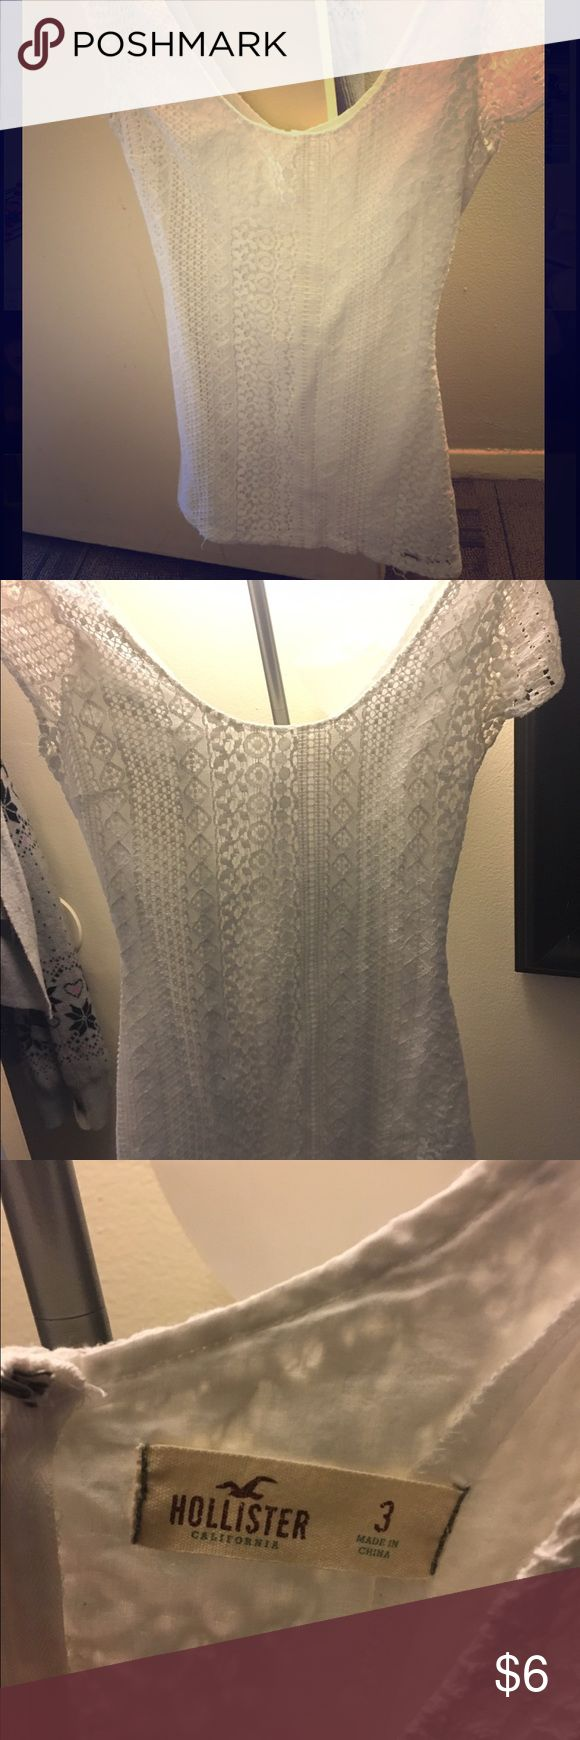 White lace hollister dress Short hollister white lace dress, very cute and form fitting Hollister Dresses Mini